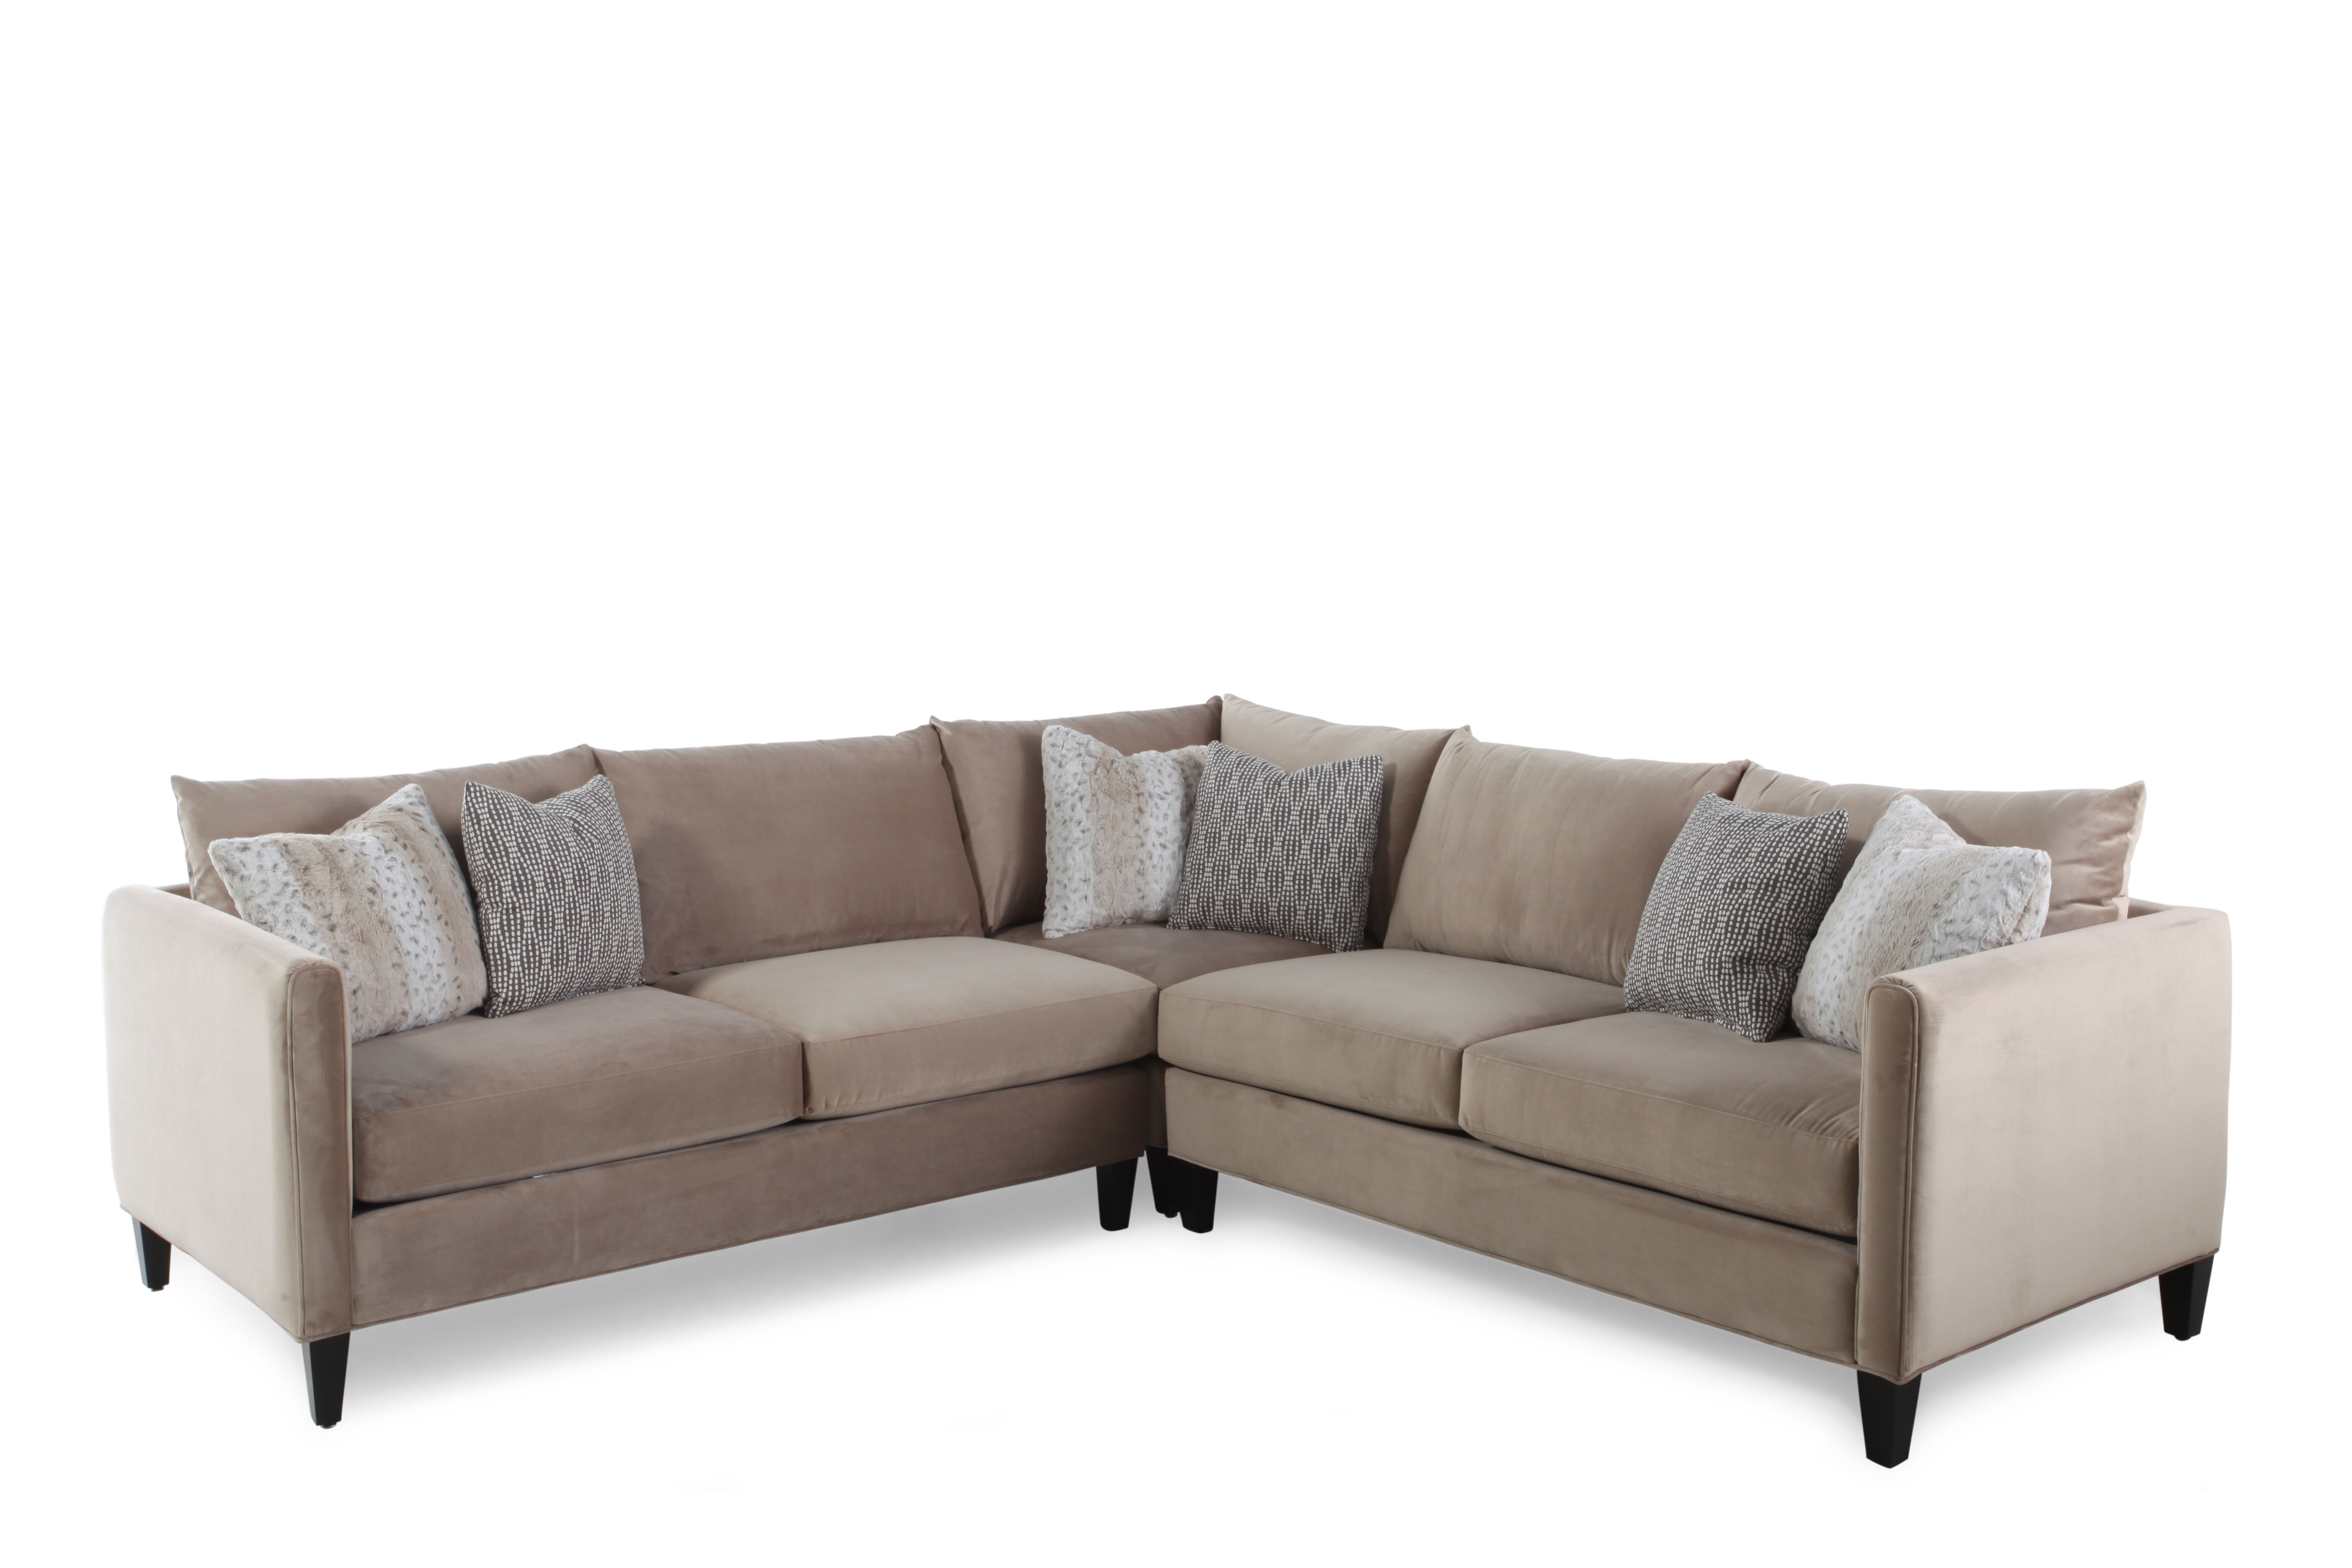 Wonderful Images Three Piece Traditional Low Profile Sectional In Milk Chocolate  Three Piece Traditional Low Profile Sectional In Milk Chocolate